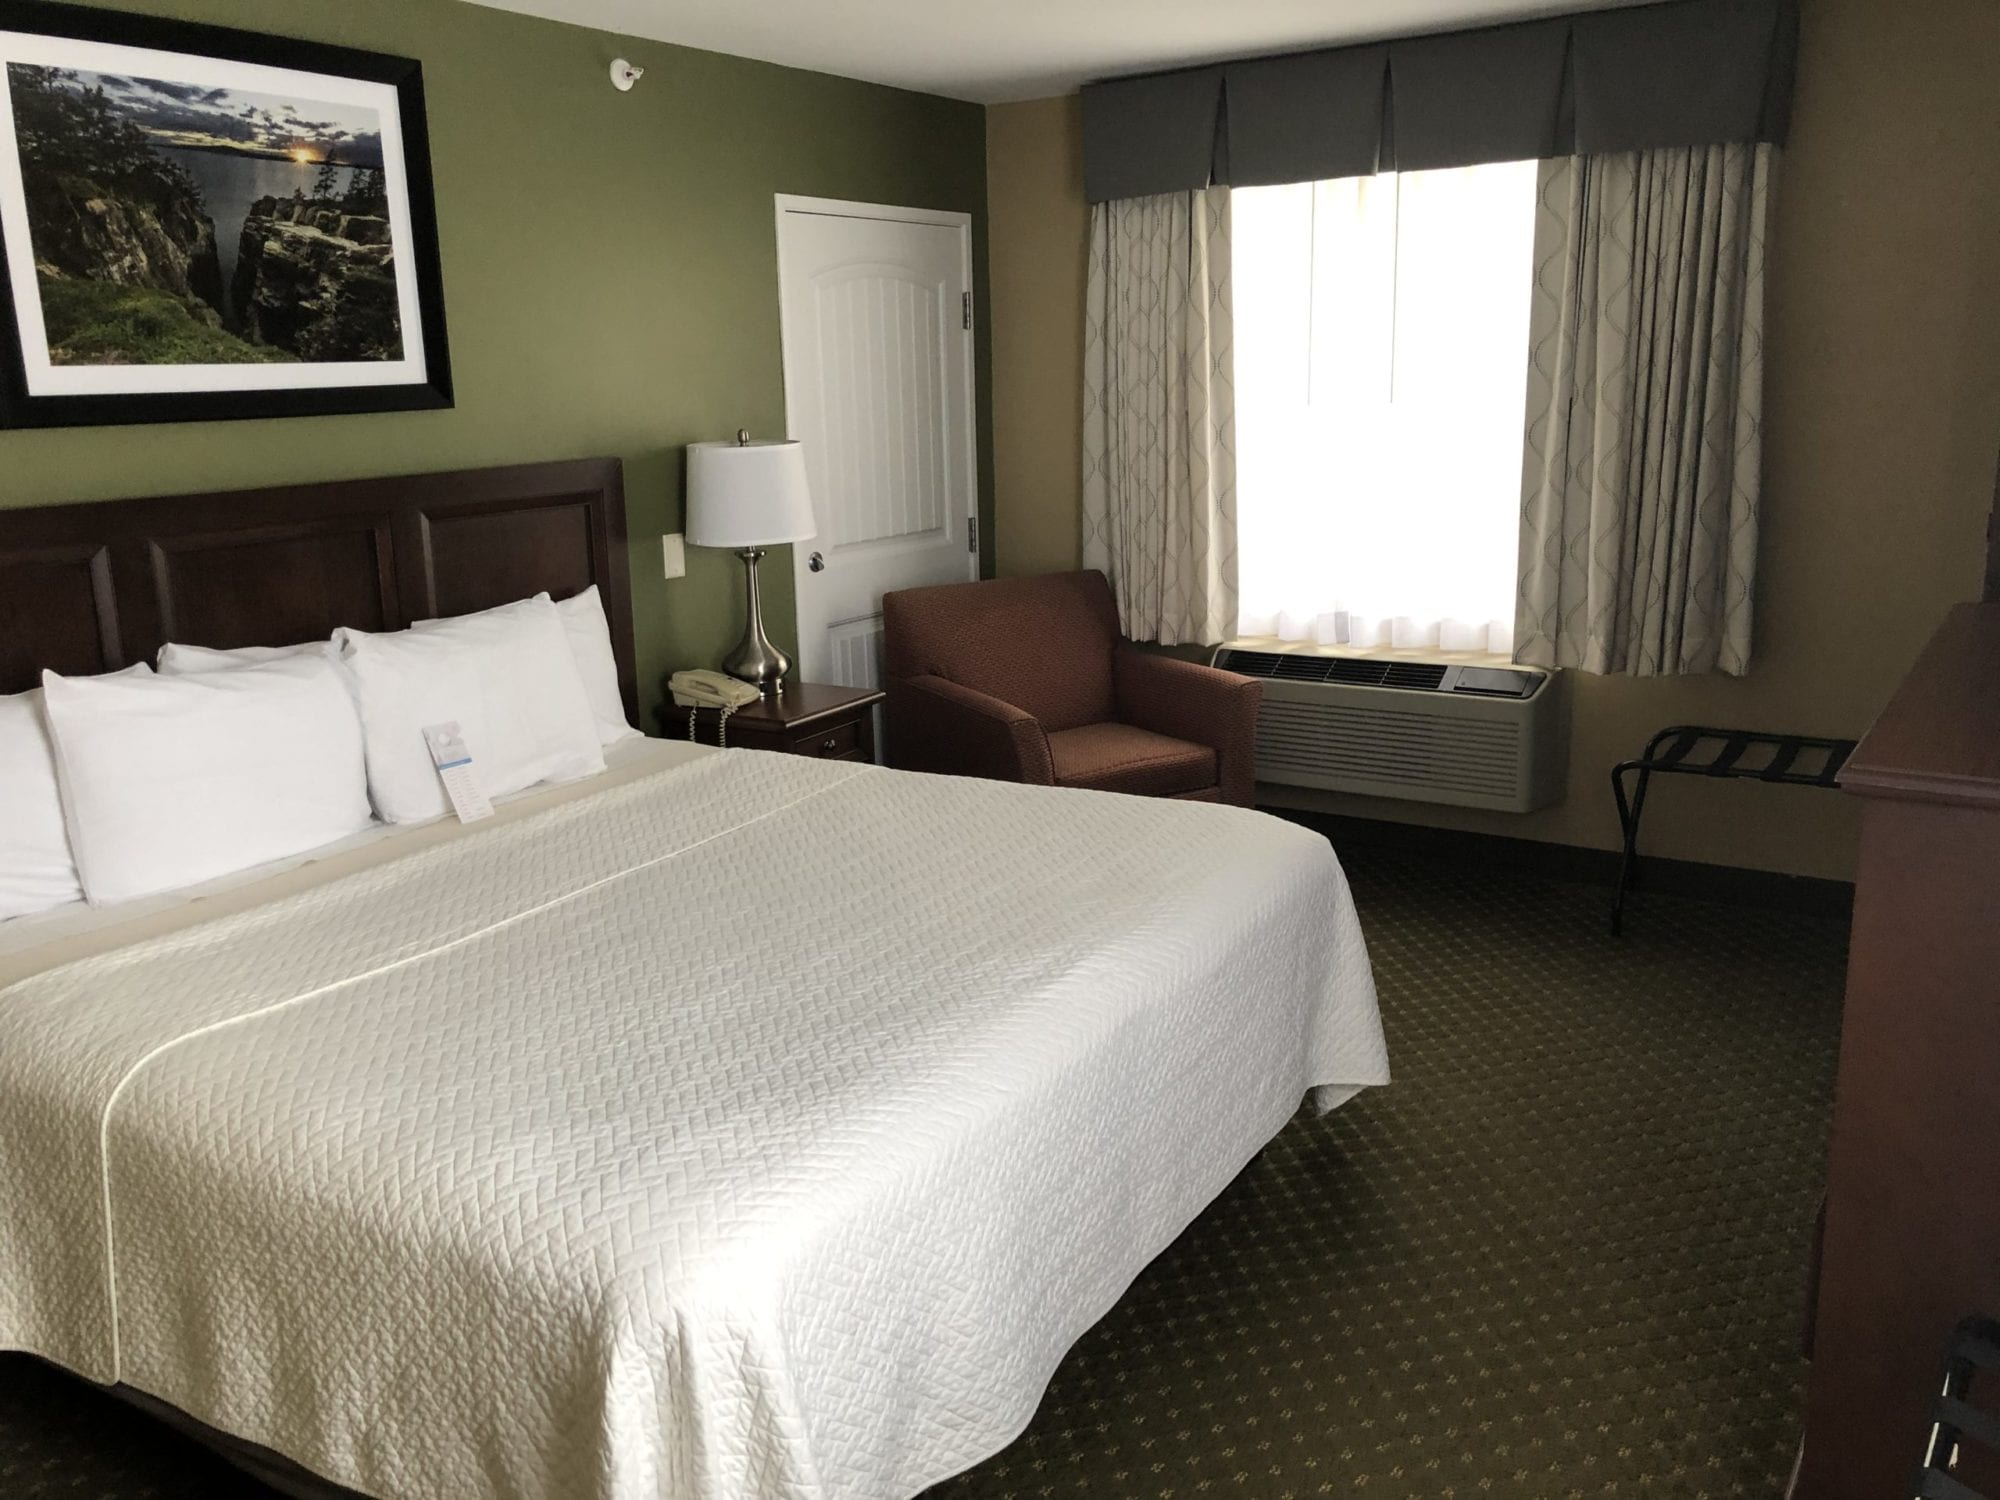 Photo of the bedroom of the Accessible King room with roll-in shower at the Acadia Inn.